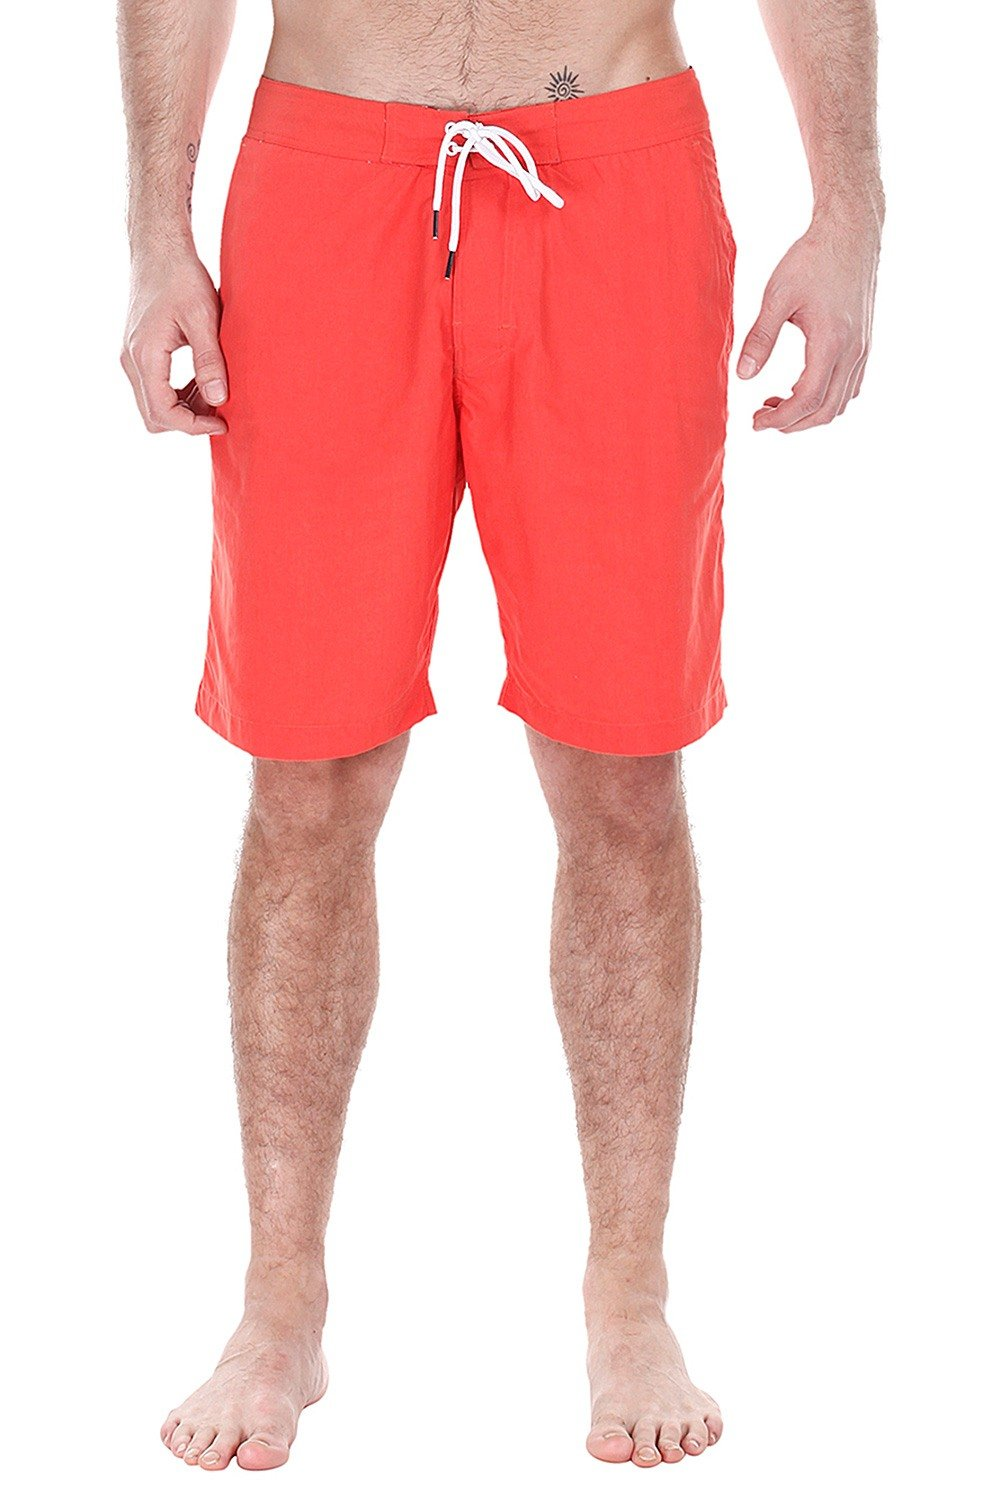 8c1294603e Buy Online Online Quick Dry Nylon Mens Floral Swimming Shorts in ...